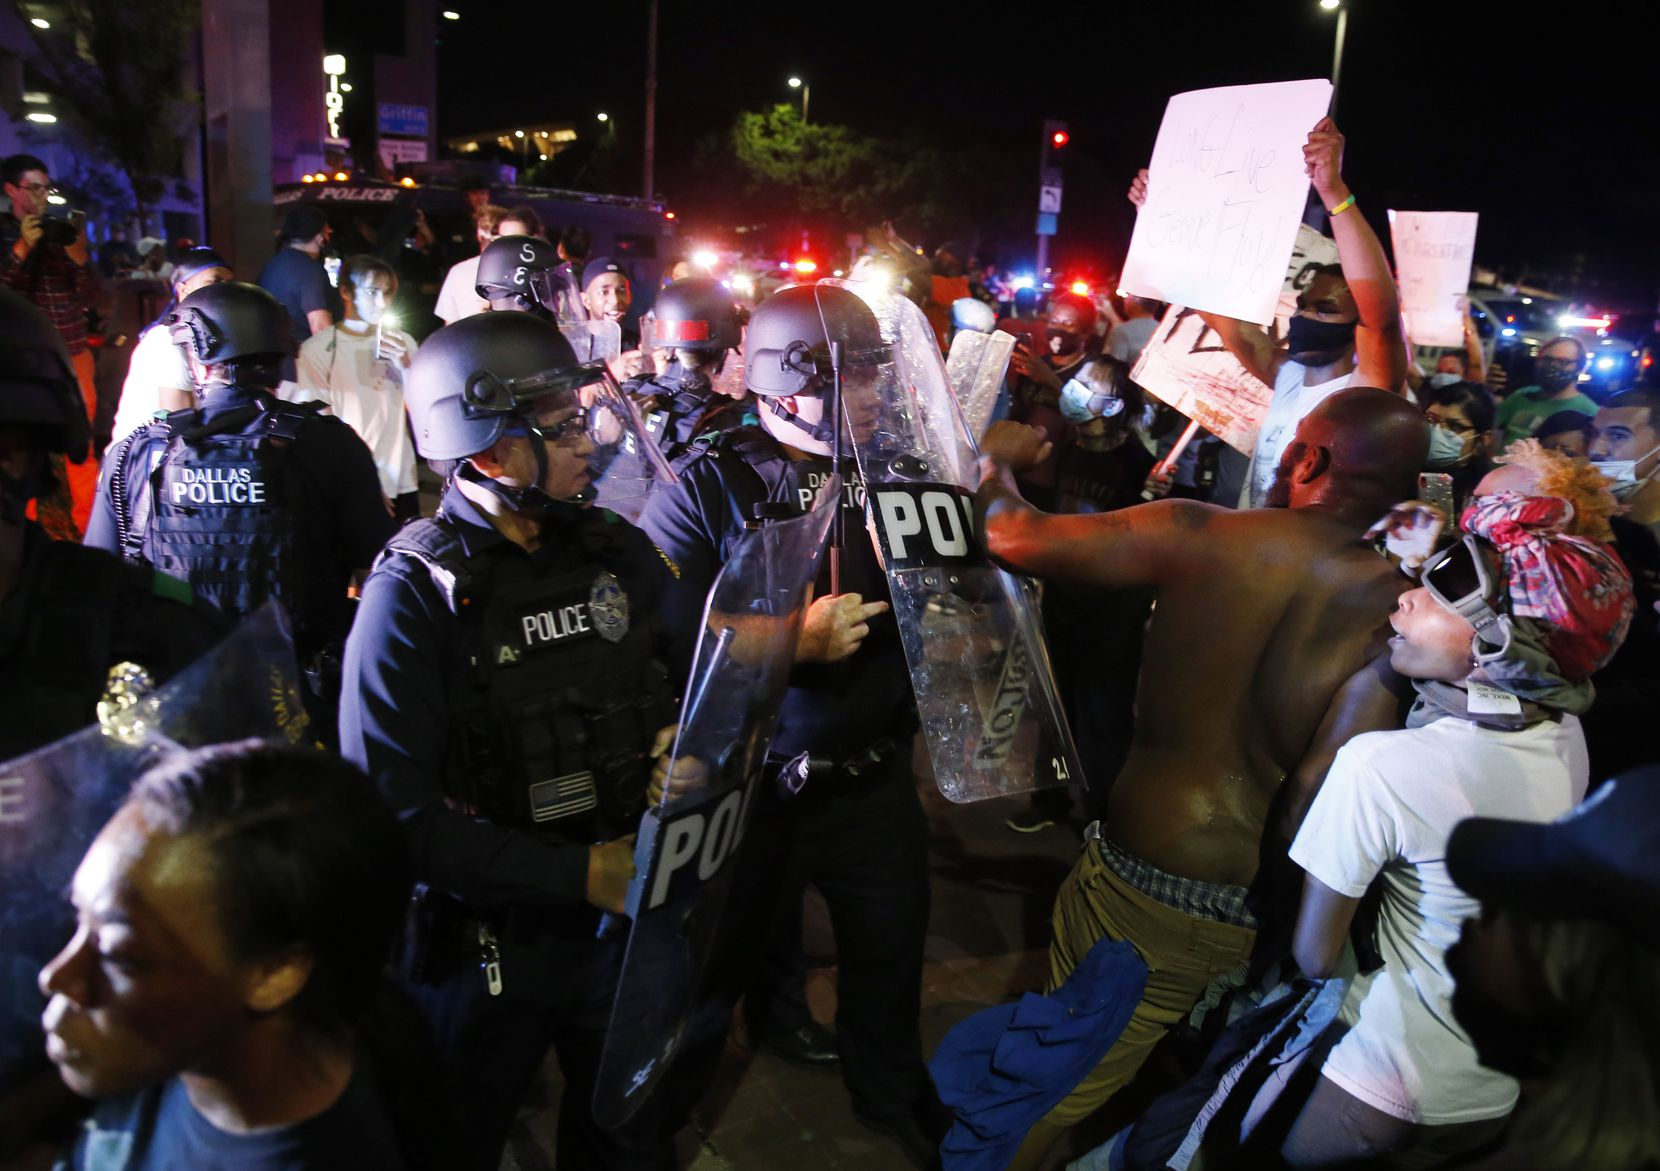 Dallas police interact with  protesters during a rally against police brutality in downtown Dallas, on Friday, May 29, 2020. George Floyd died in police custody in Minneapolis on May 25.